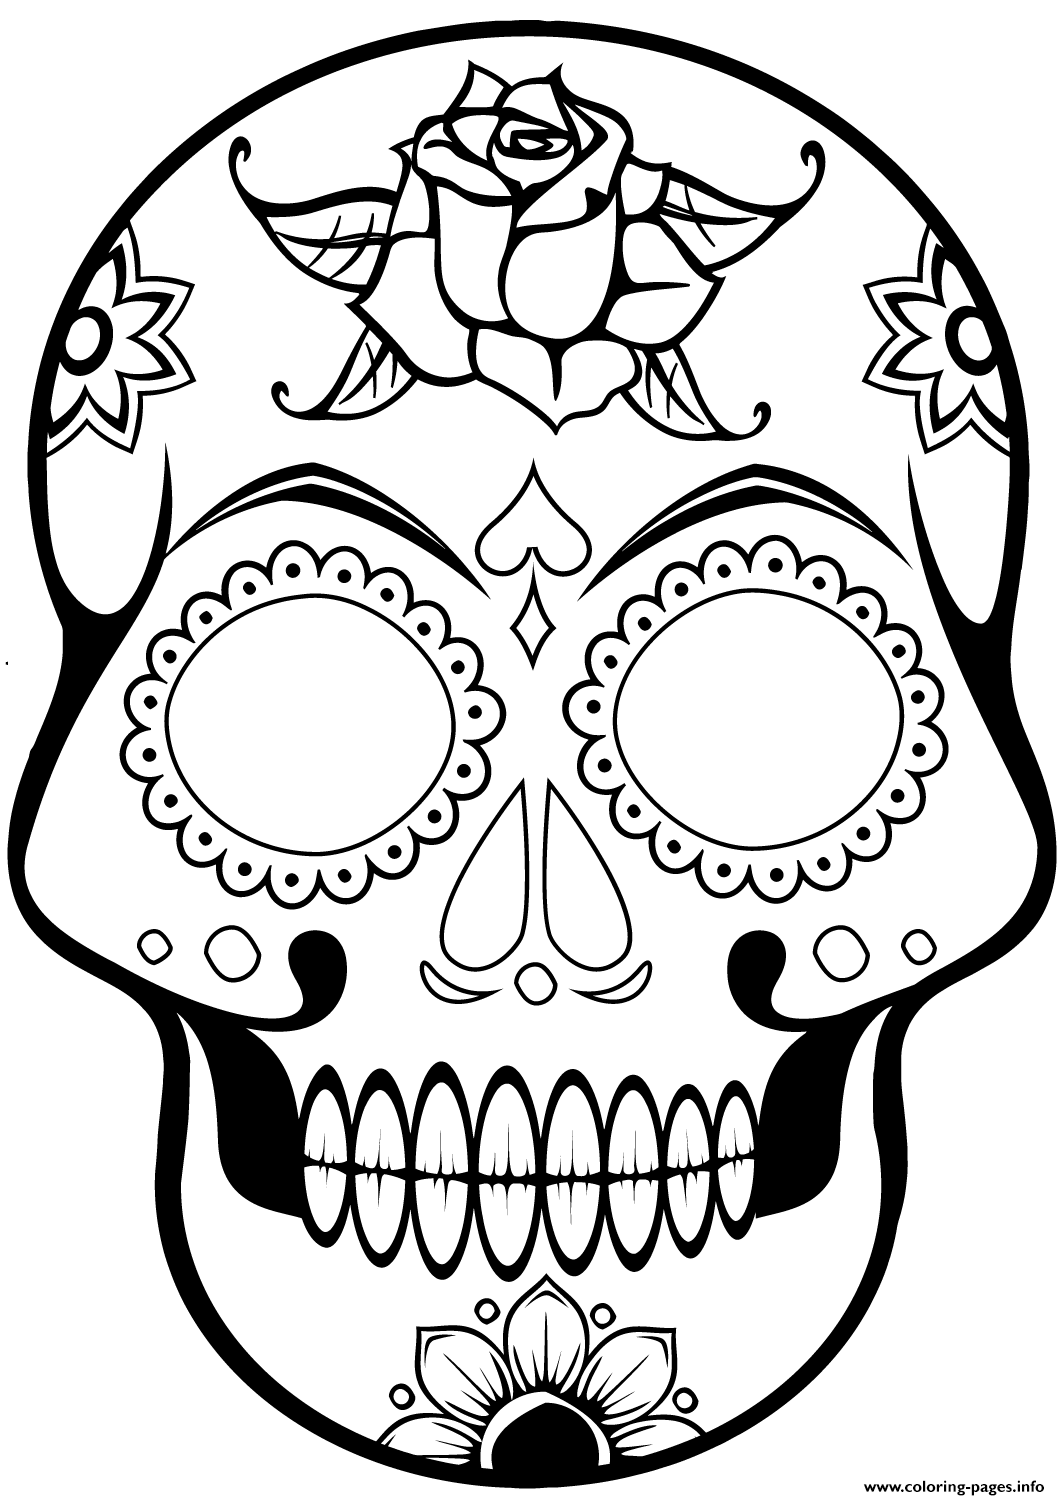 Cool Sugar Skull 2 1 Calavera coloring pages